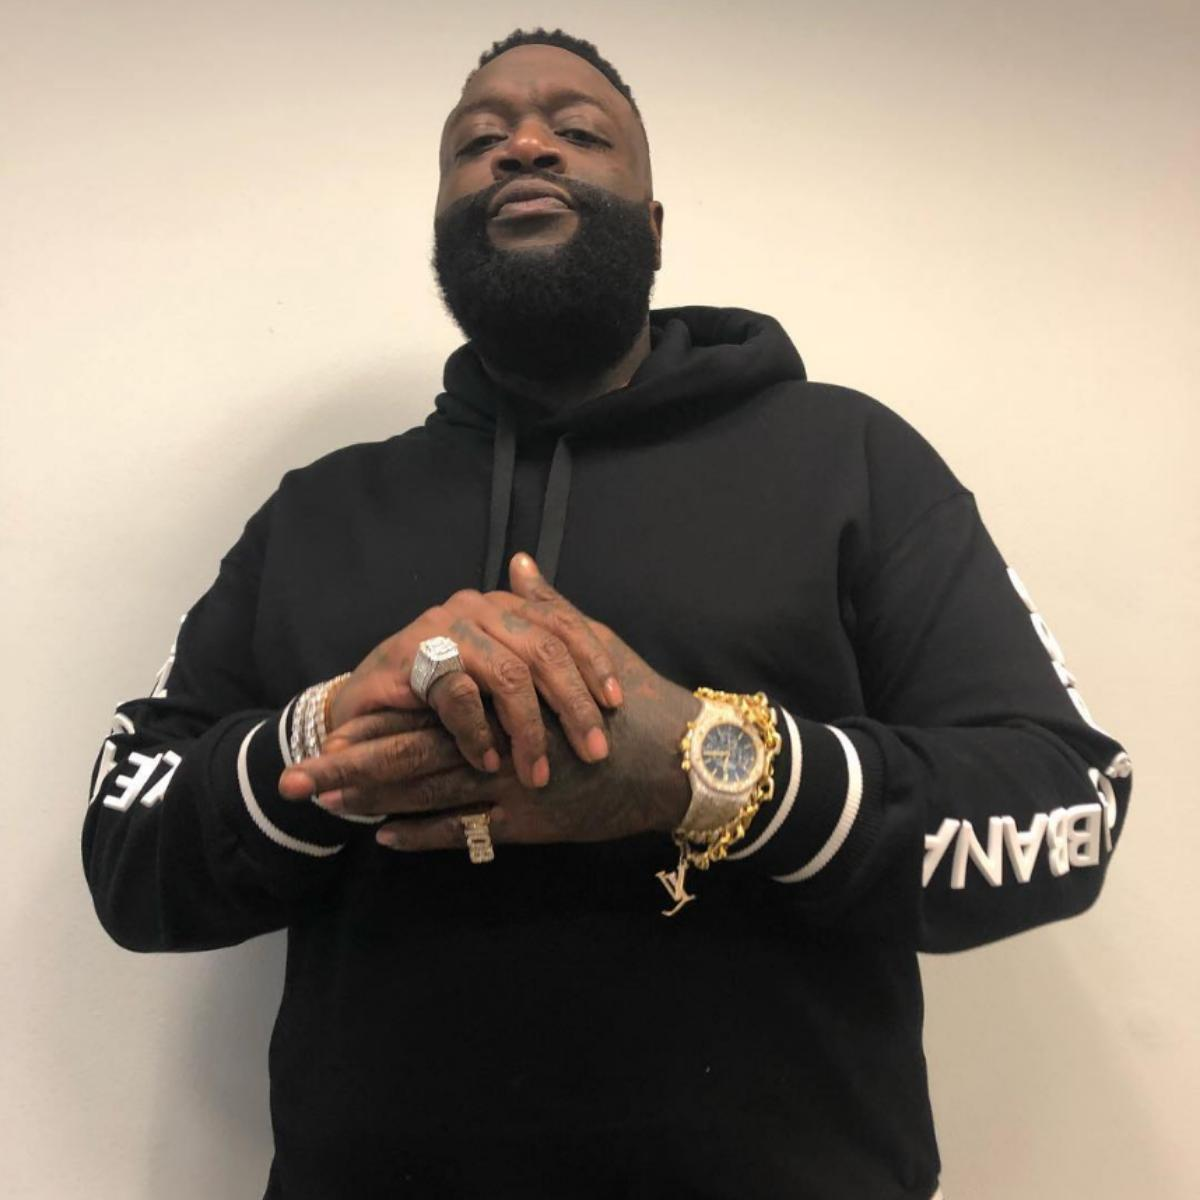 Rick Ross Defecated In Bed While With A Woman